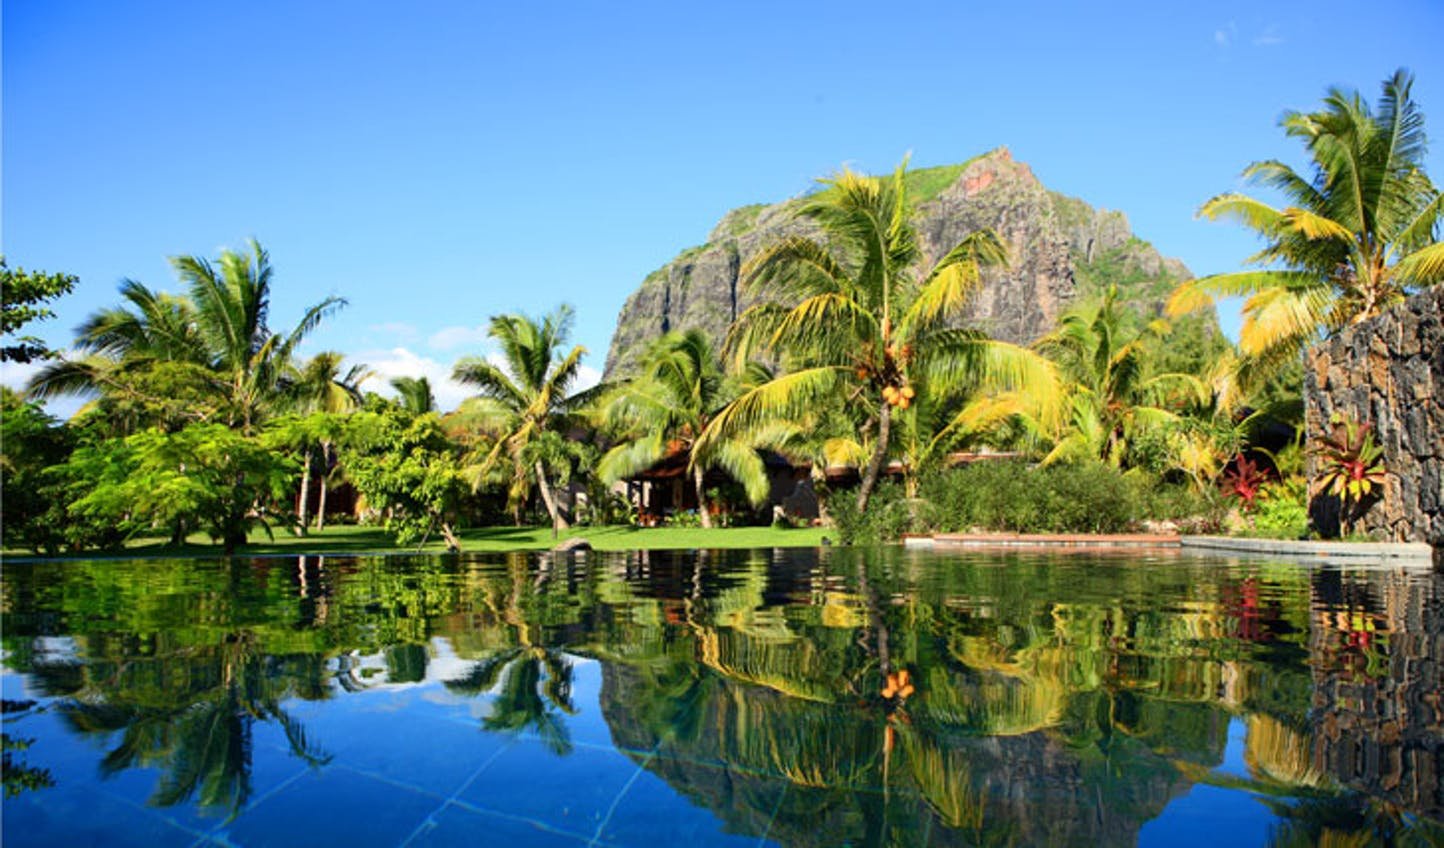 The lush gardens at Le Morne